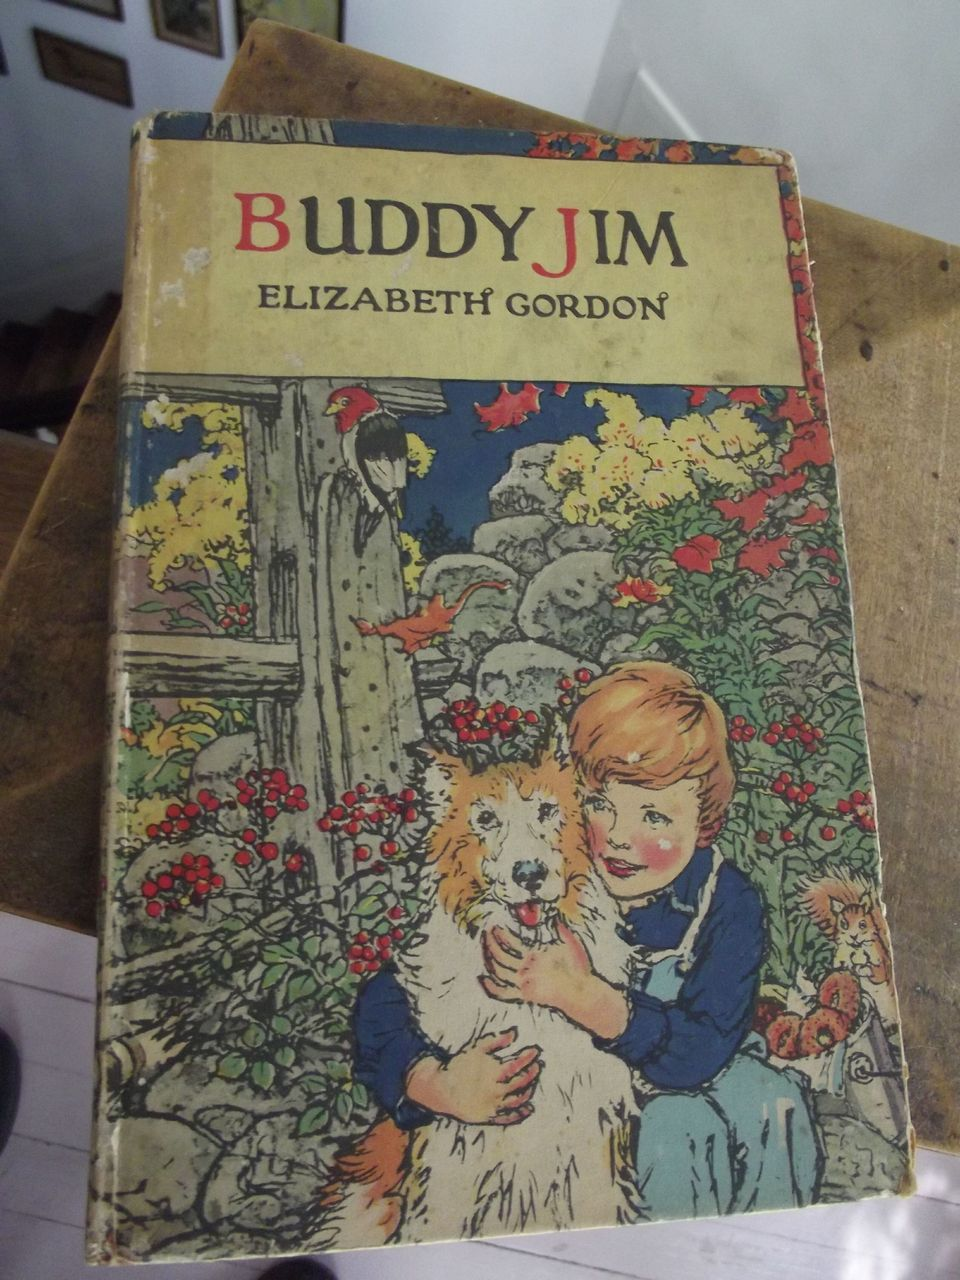 Buddy Jim